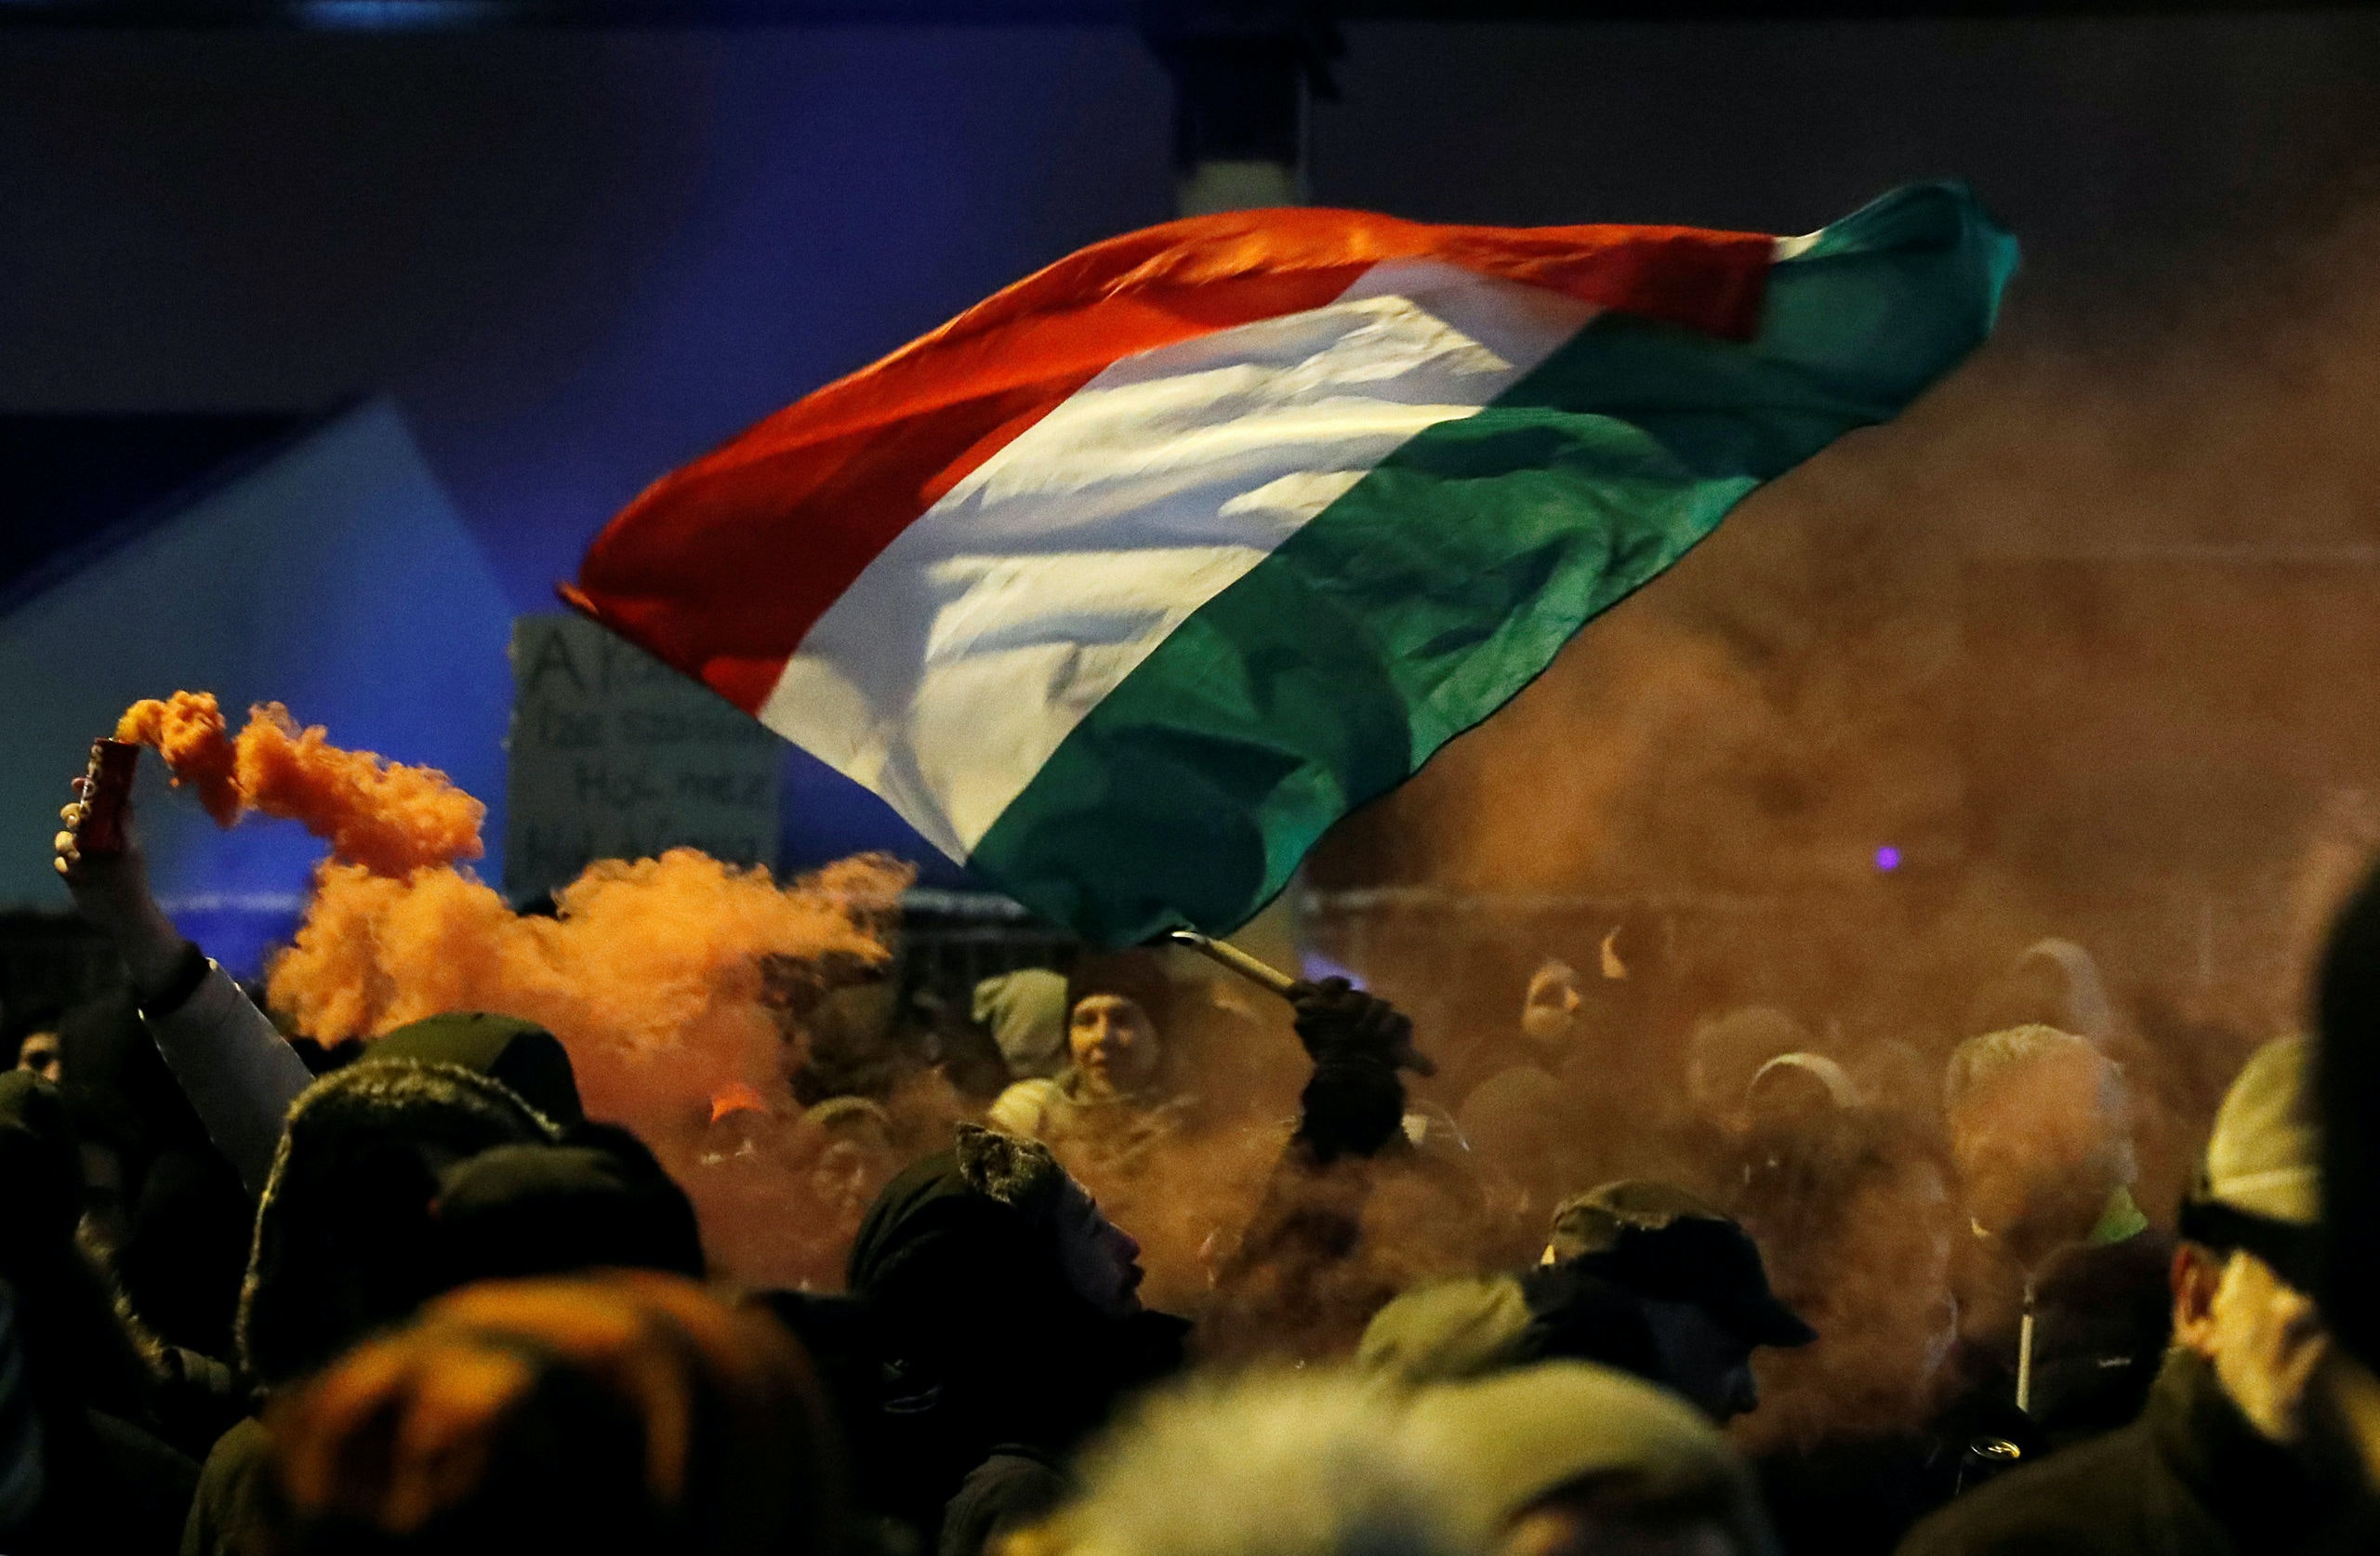 """Hungarian national flag and smoke from flares are pictured during a protest against a proposed new labor law, billed as the """"slave law"""", outside the headquarters of the Hungarian state television in Budapest, Hungary, December 17, 2018. REUTERS/Bernadett Szabo"""